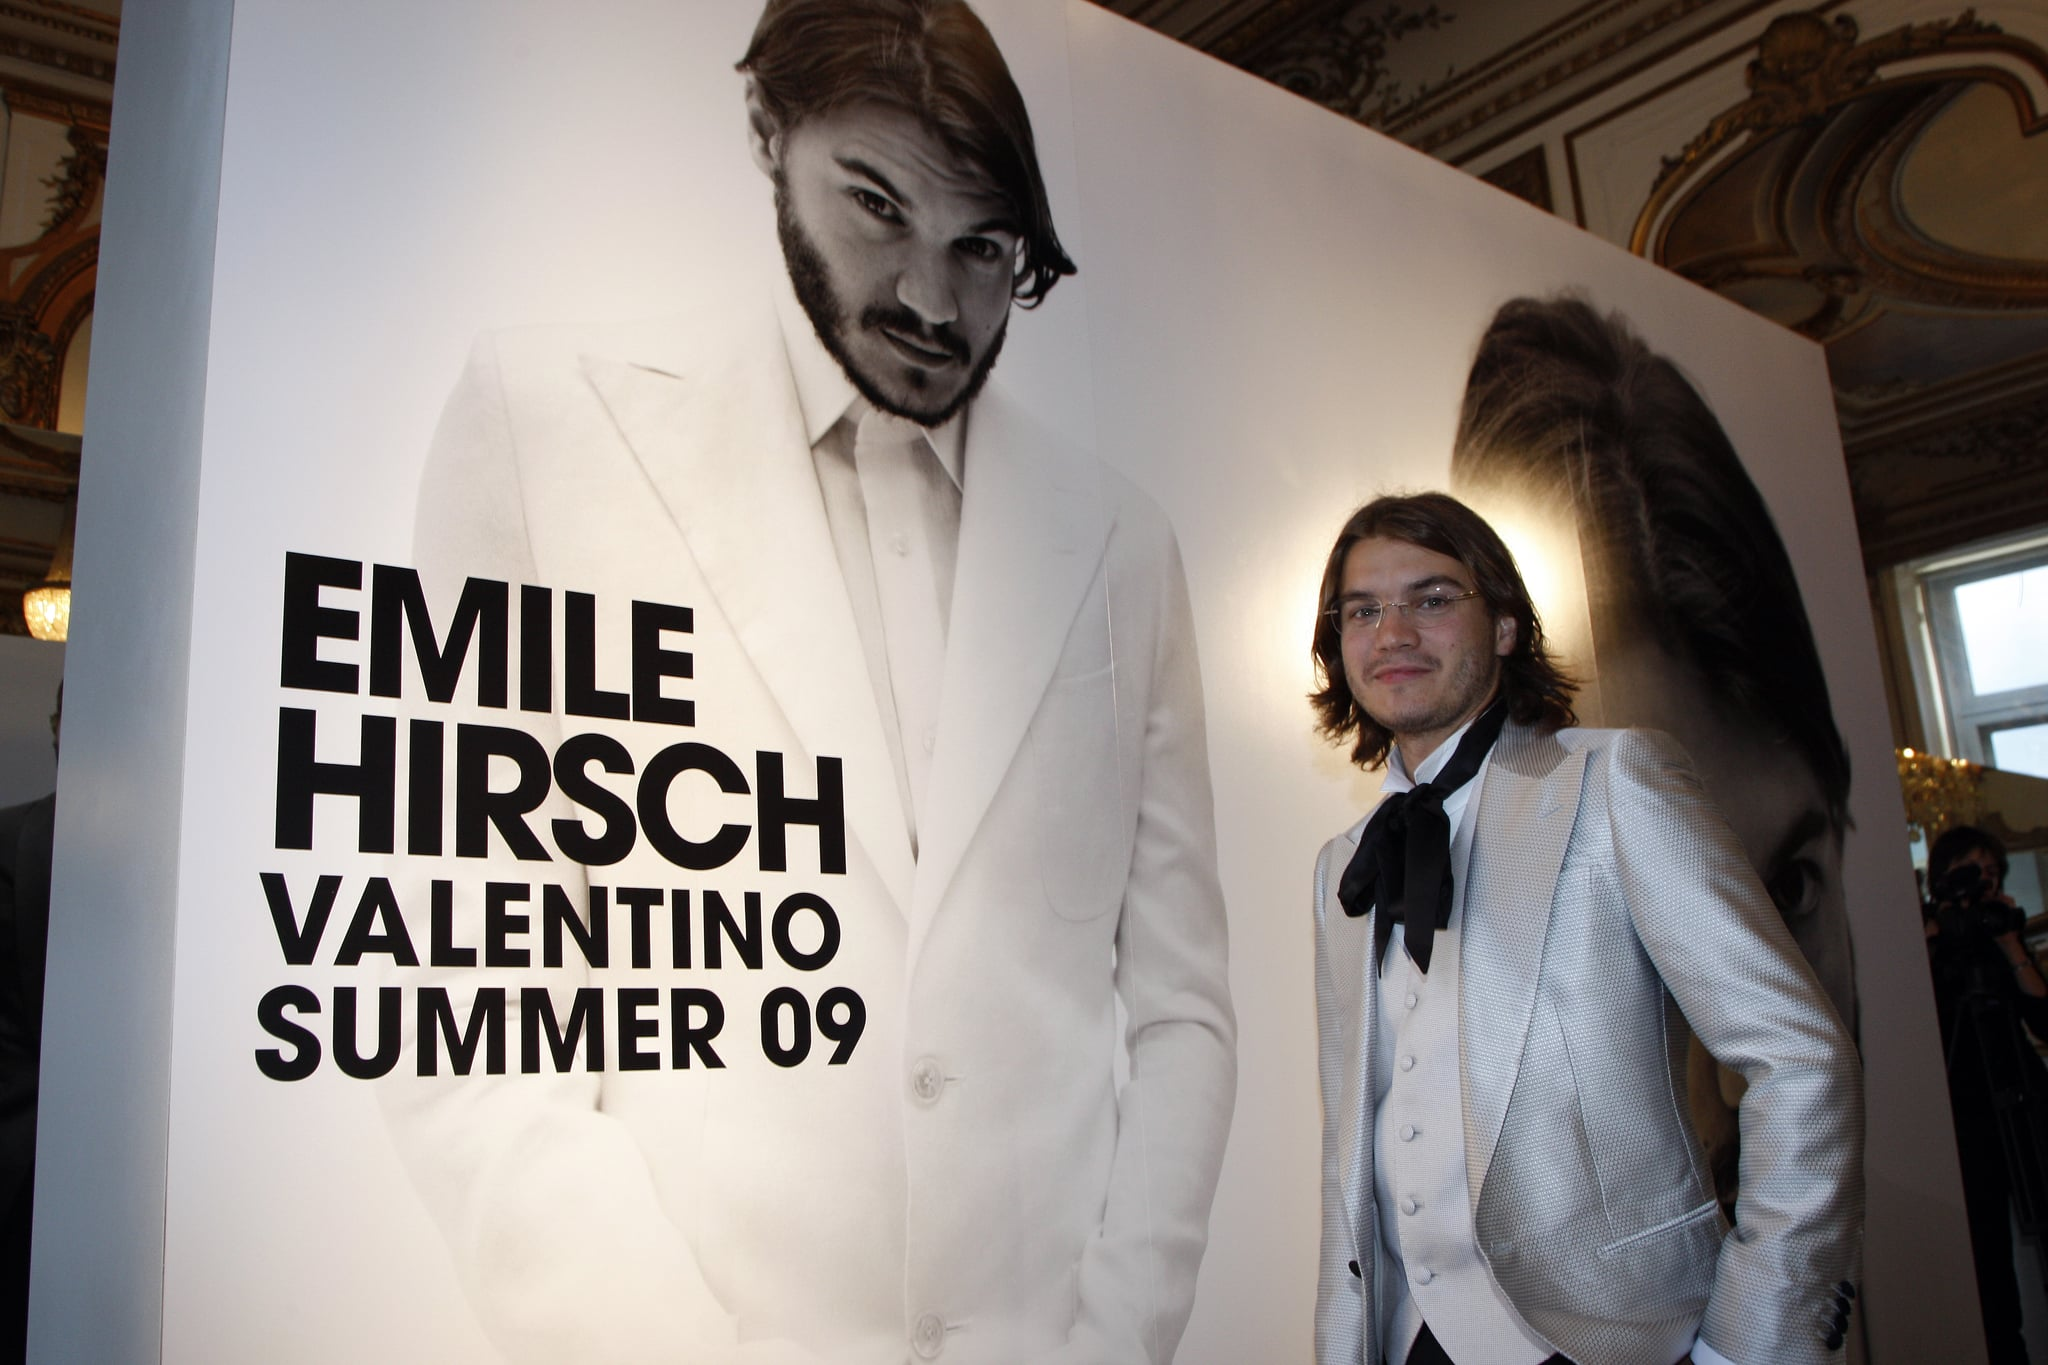 Emile Hirsch for Valentino